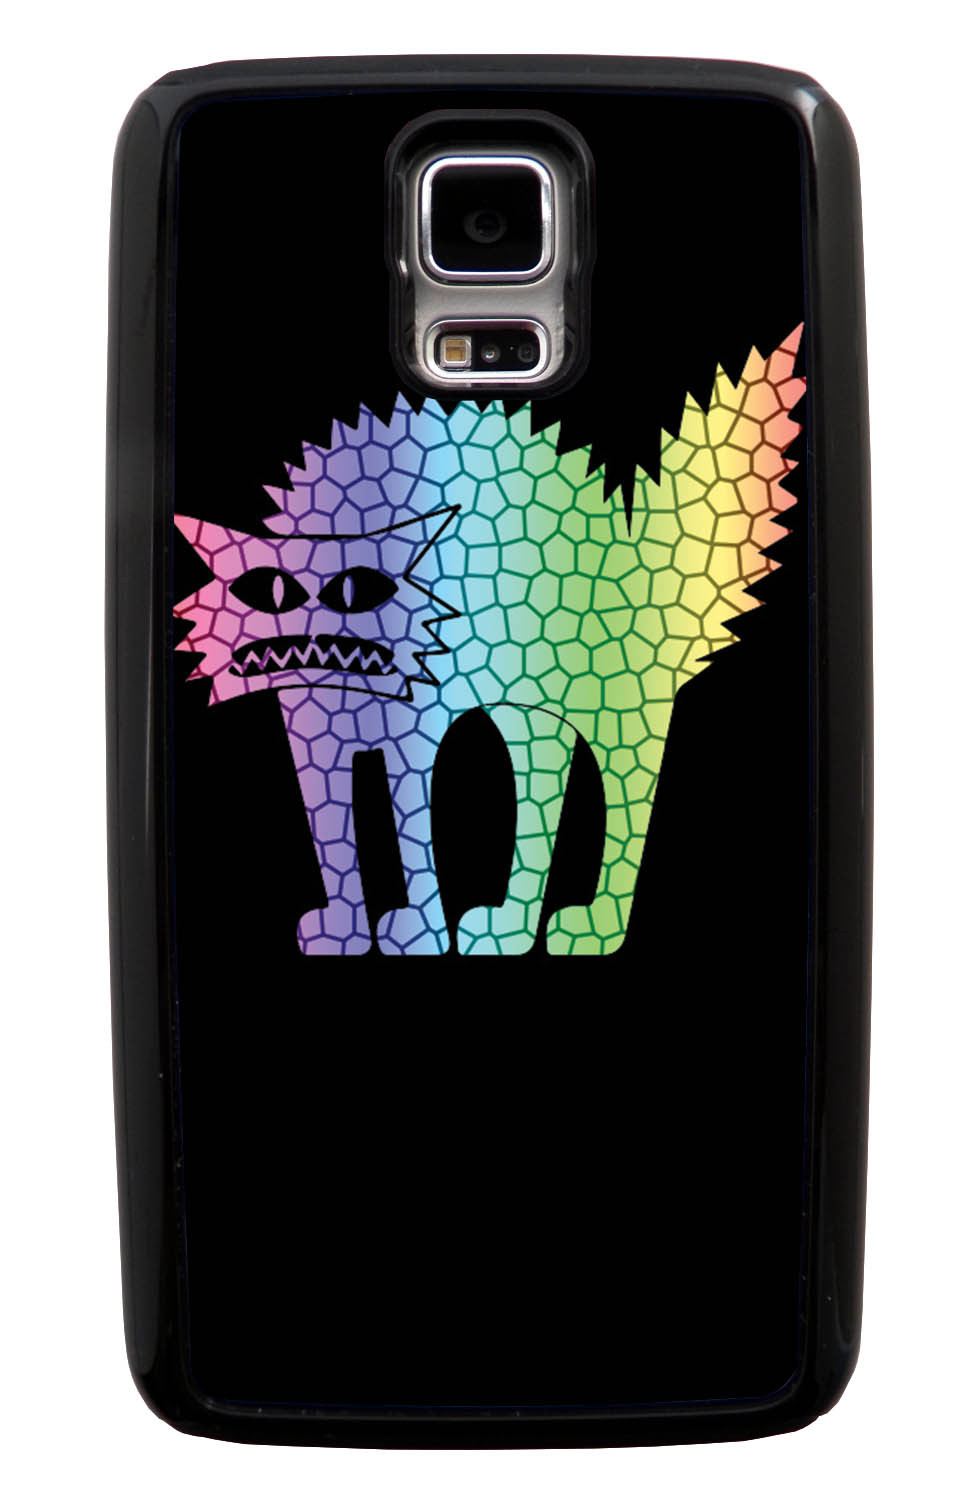 Samsung Galaxy S5 / SV Cat Case - Rainbow Colored Frenzied Cat on Black - Simple Stencils Cutout - Black Tough Hybrid Case